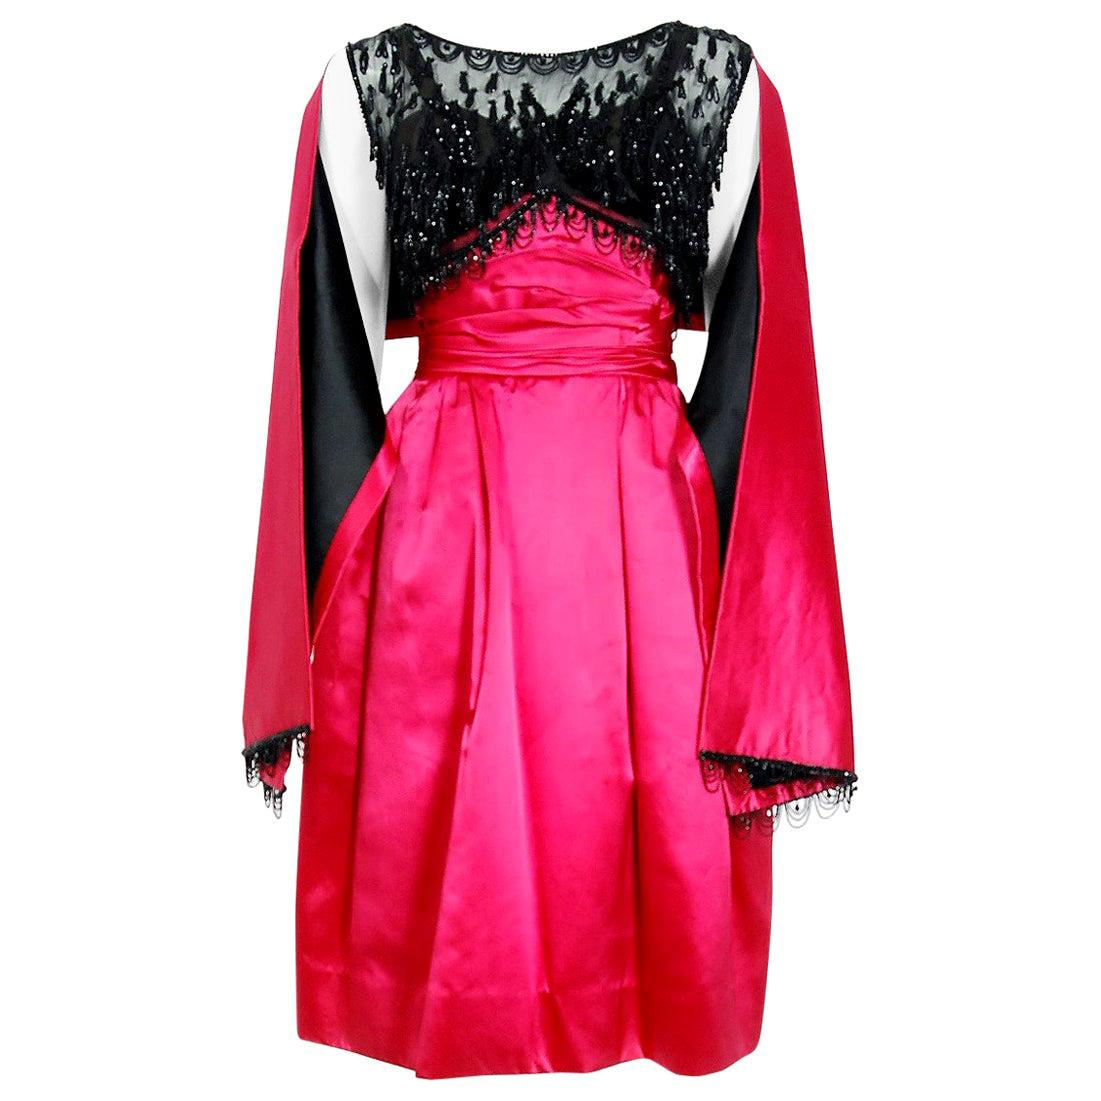 Vintage 1950's Couture Fuchsia Satin Beaded Illusion Cocktail Dress w/ Shawl